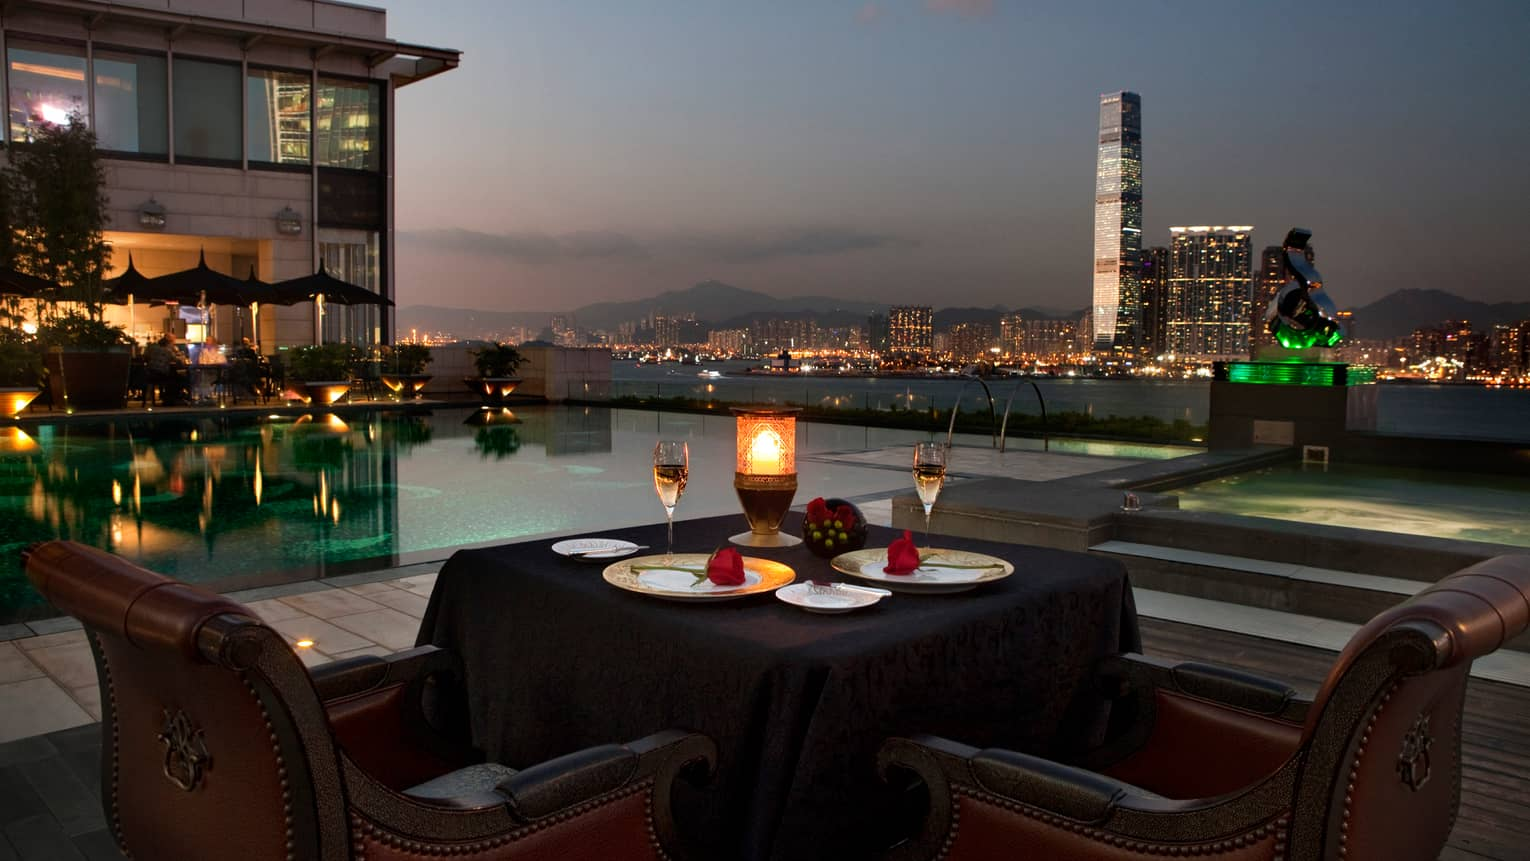 Candle-lit patio dining table by swimming pool at night, skyscrapers and city lights